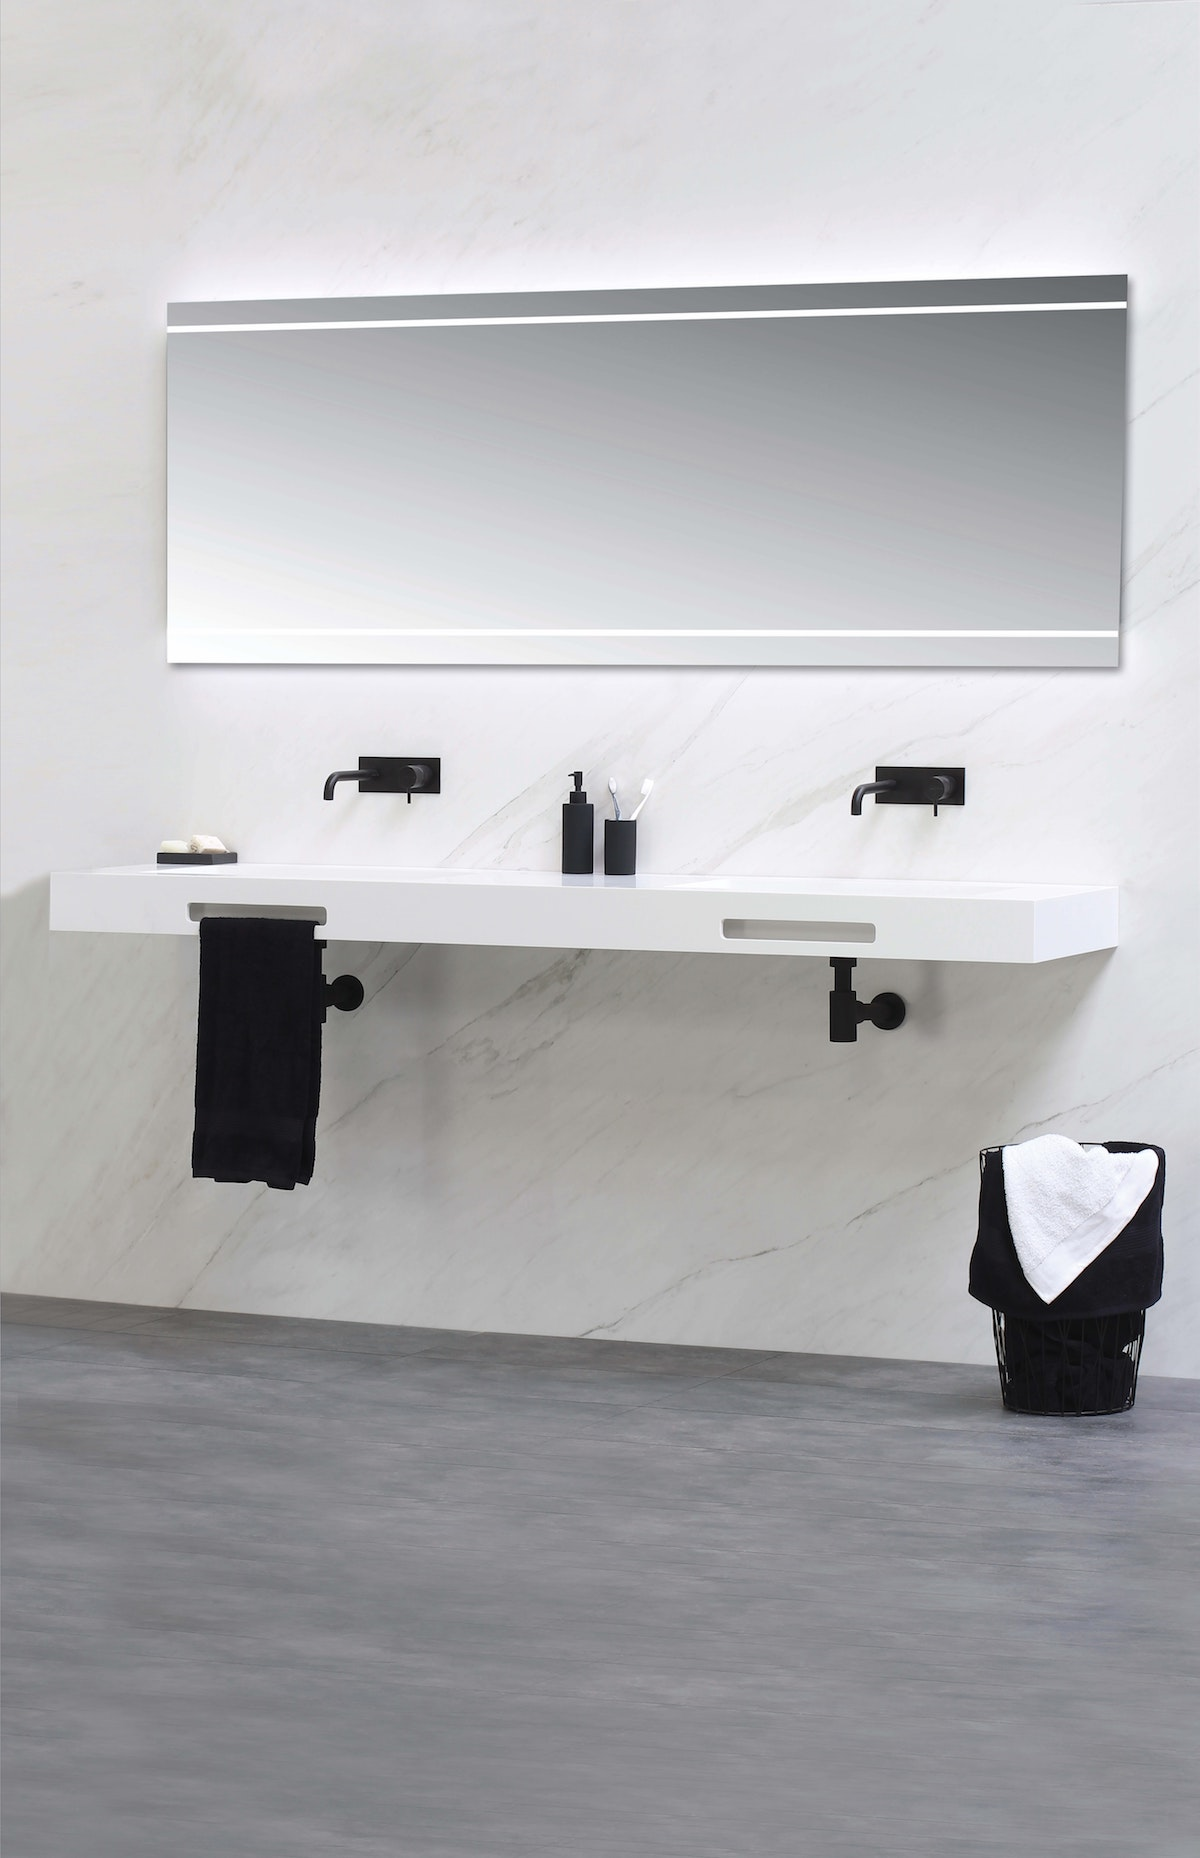 Mounted Bathroom Counter with Built-In Sinks